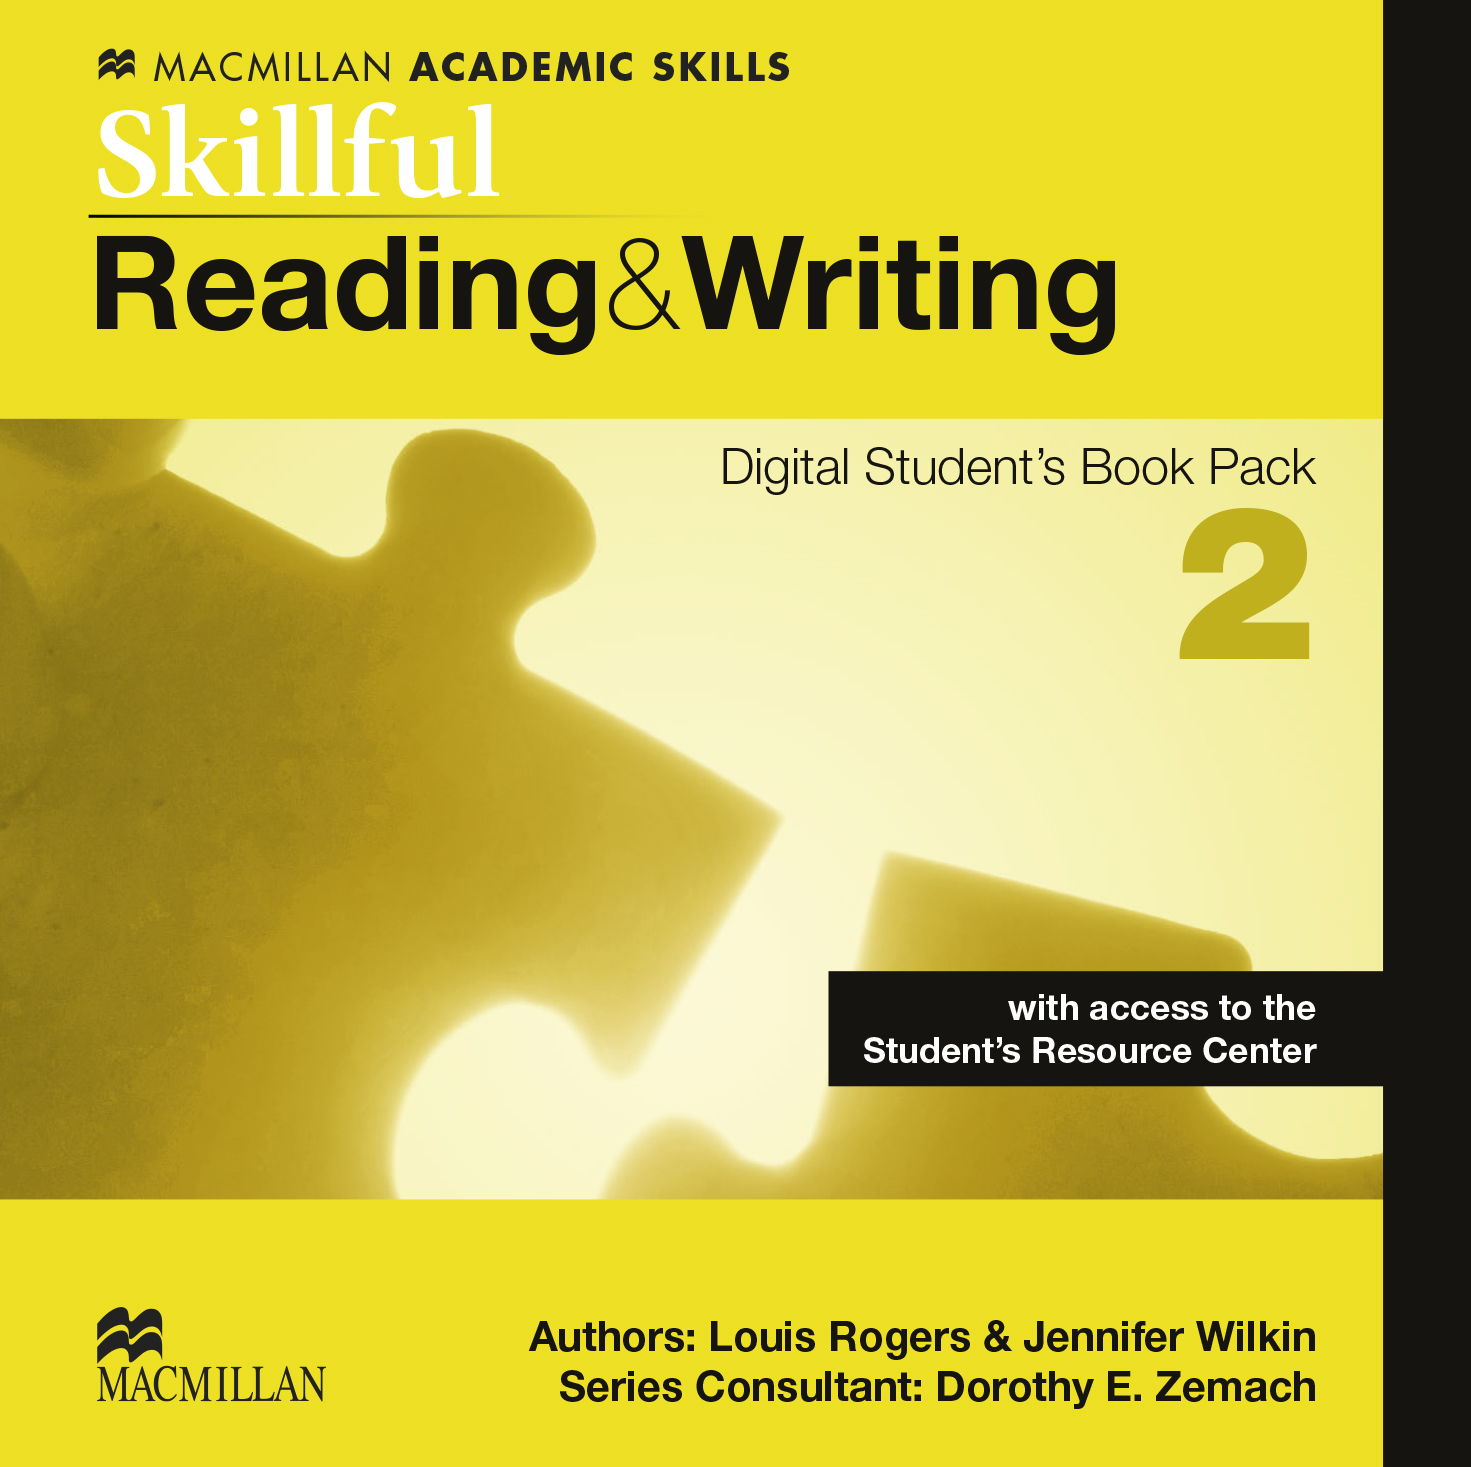 Skillful Level 2 Reading & Writing Digital Student